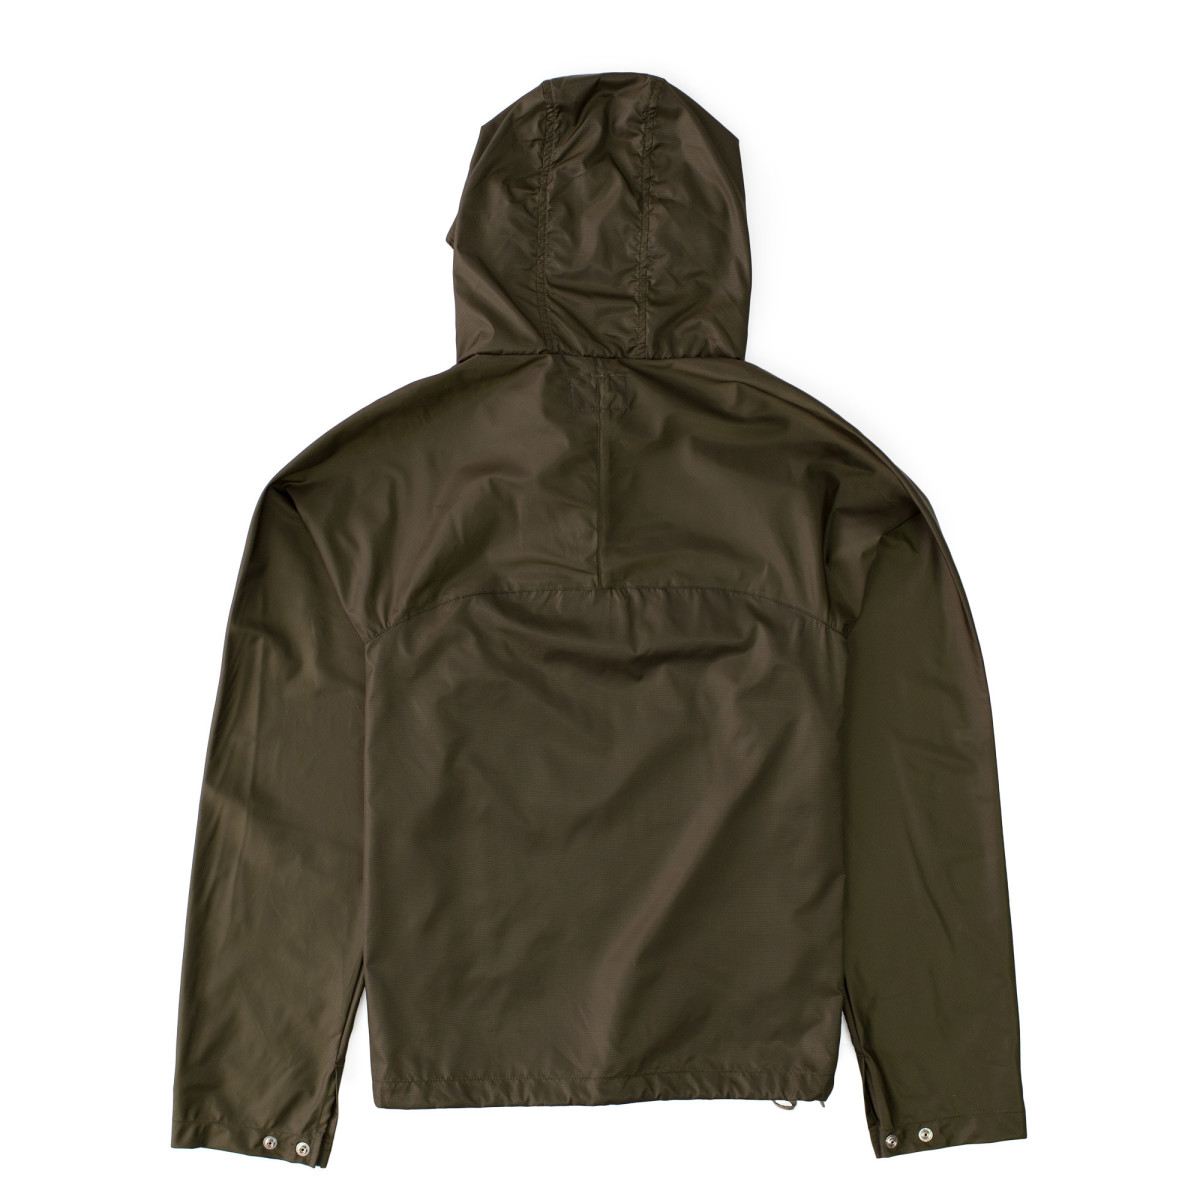 battenwear-packable-anorak-for-ace-hotel-02.jpg